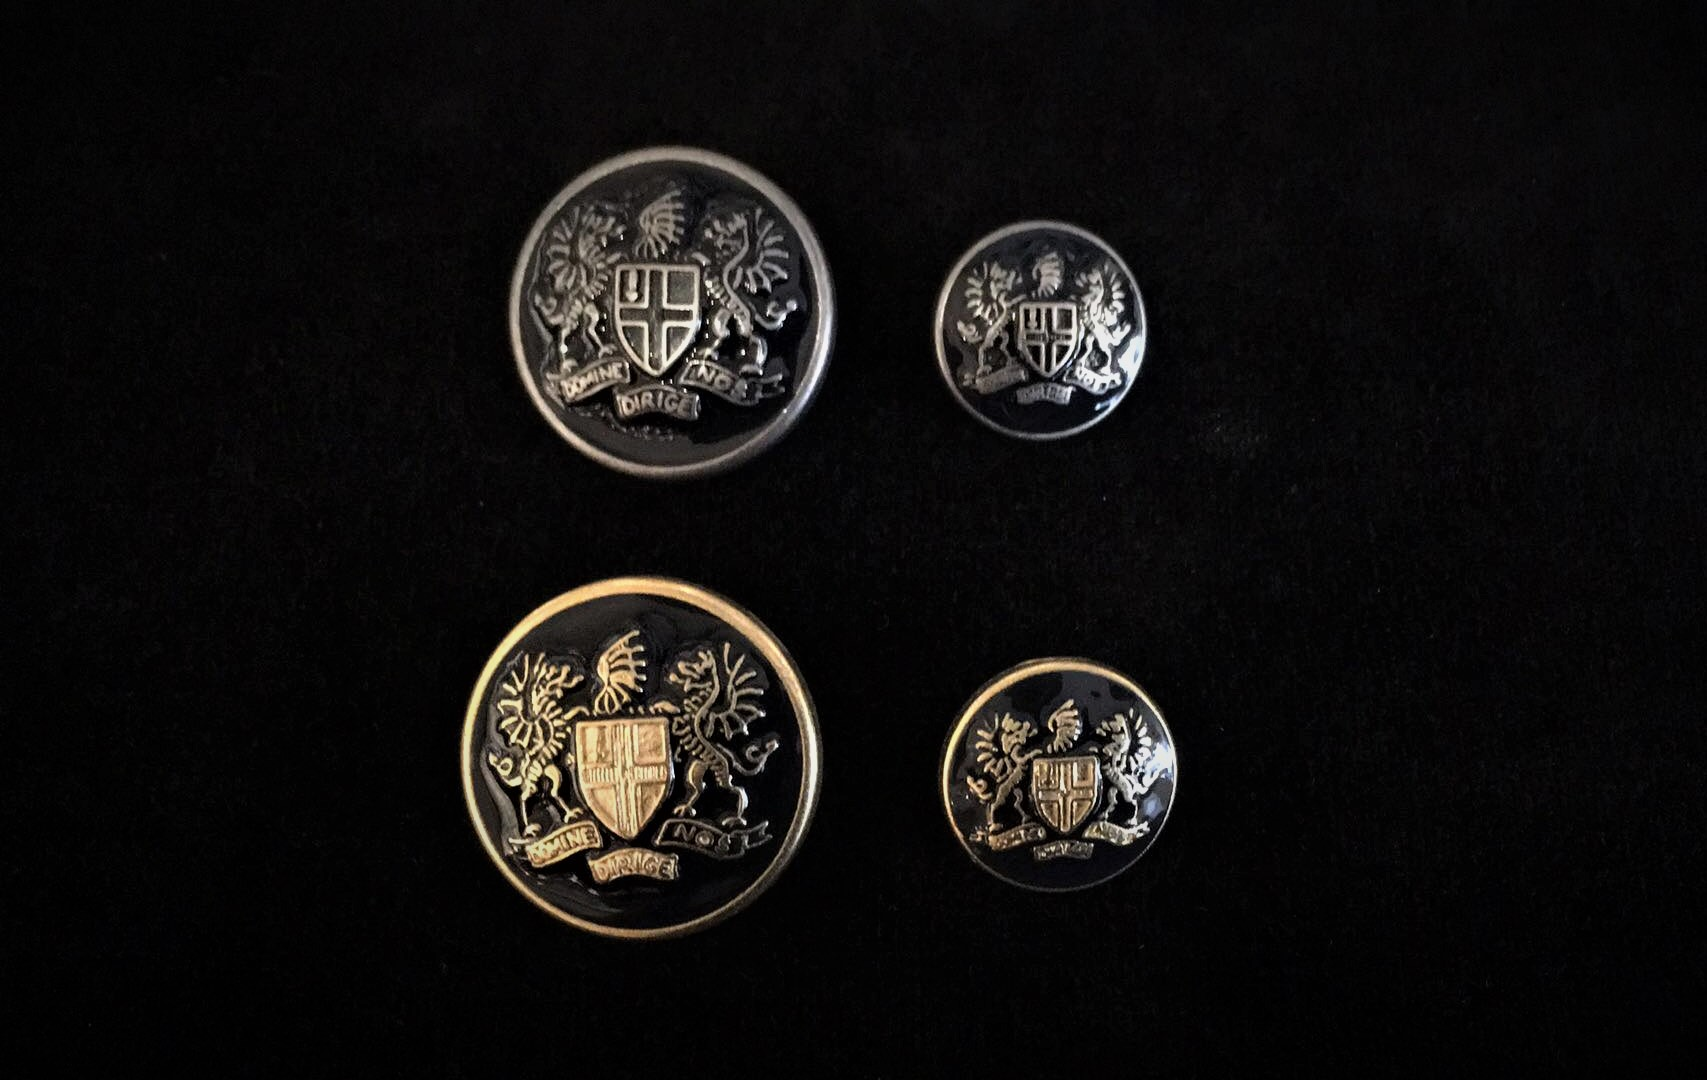 Metal Militray Style Buttons